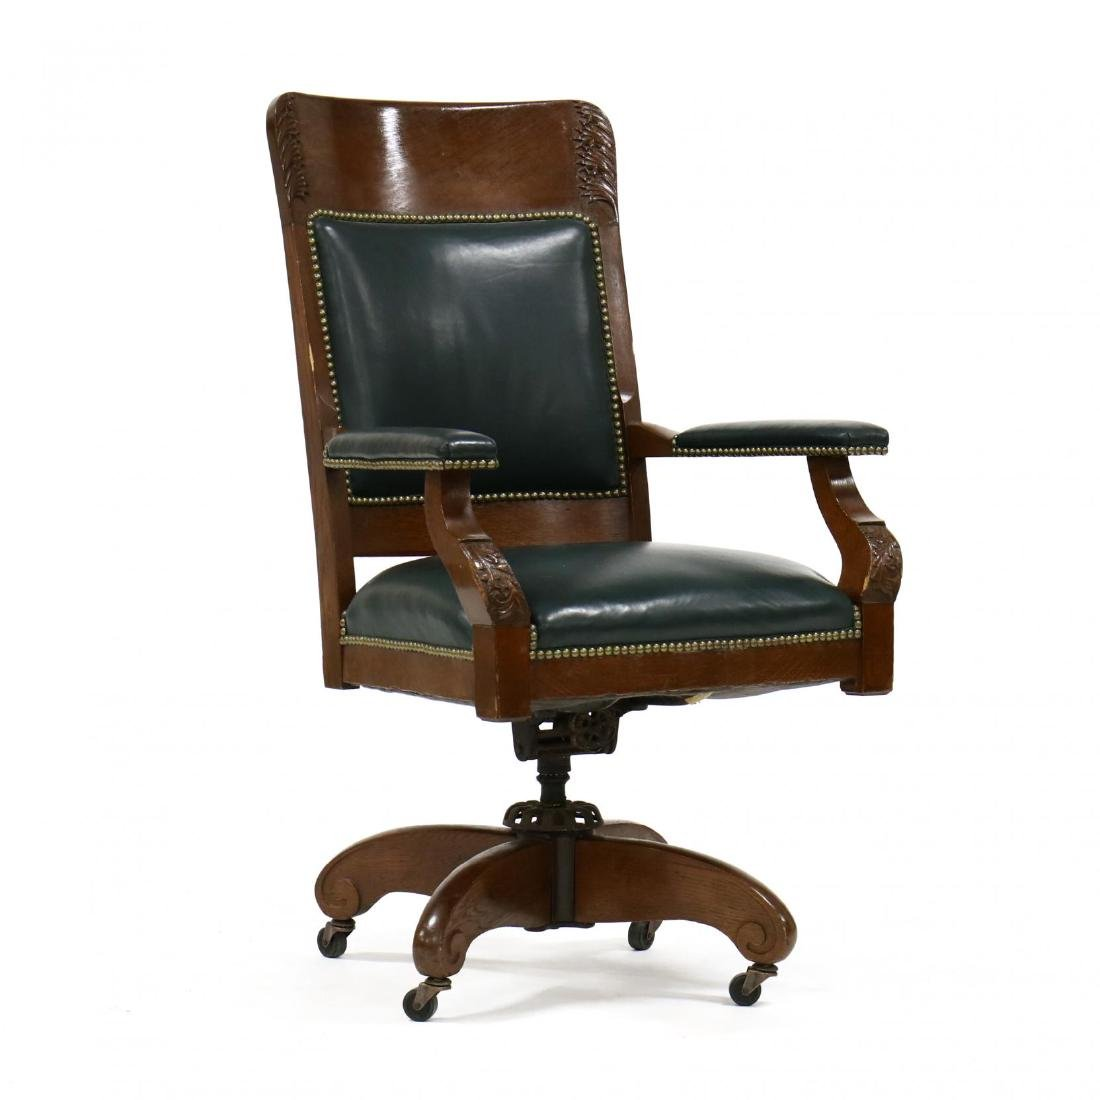 Edwardian Carved Oak and Leather Office Chair